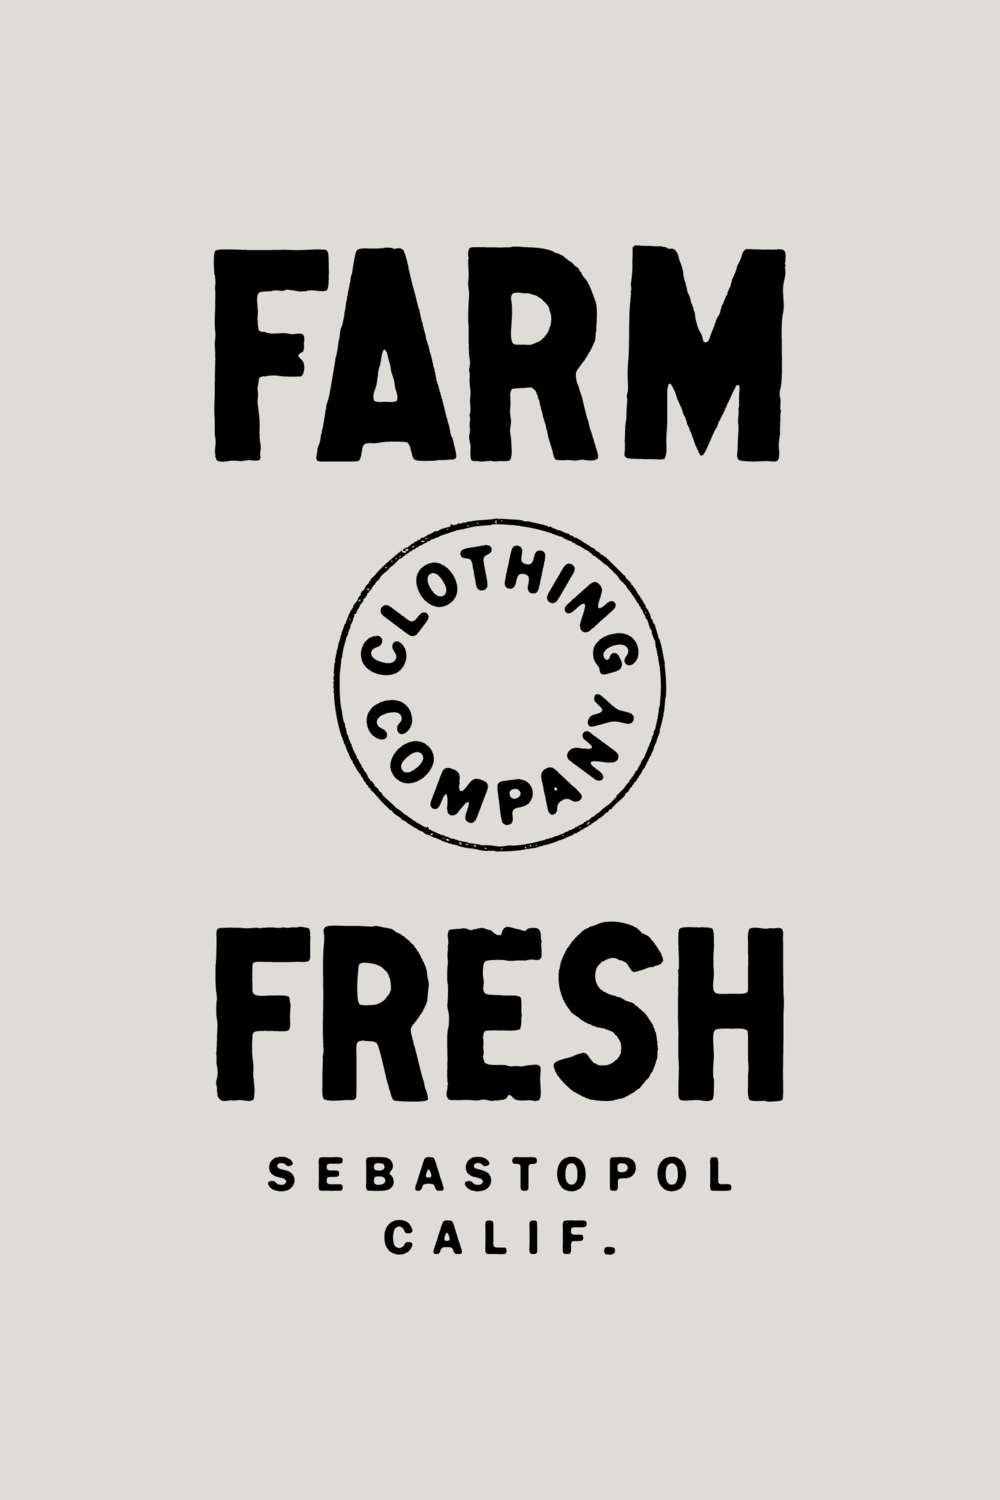 web-farmfresh-02.png